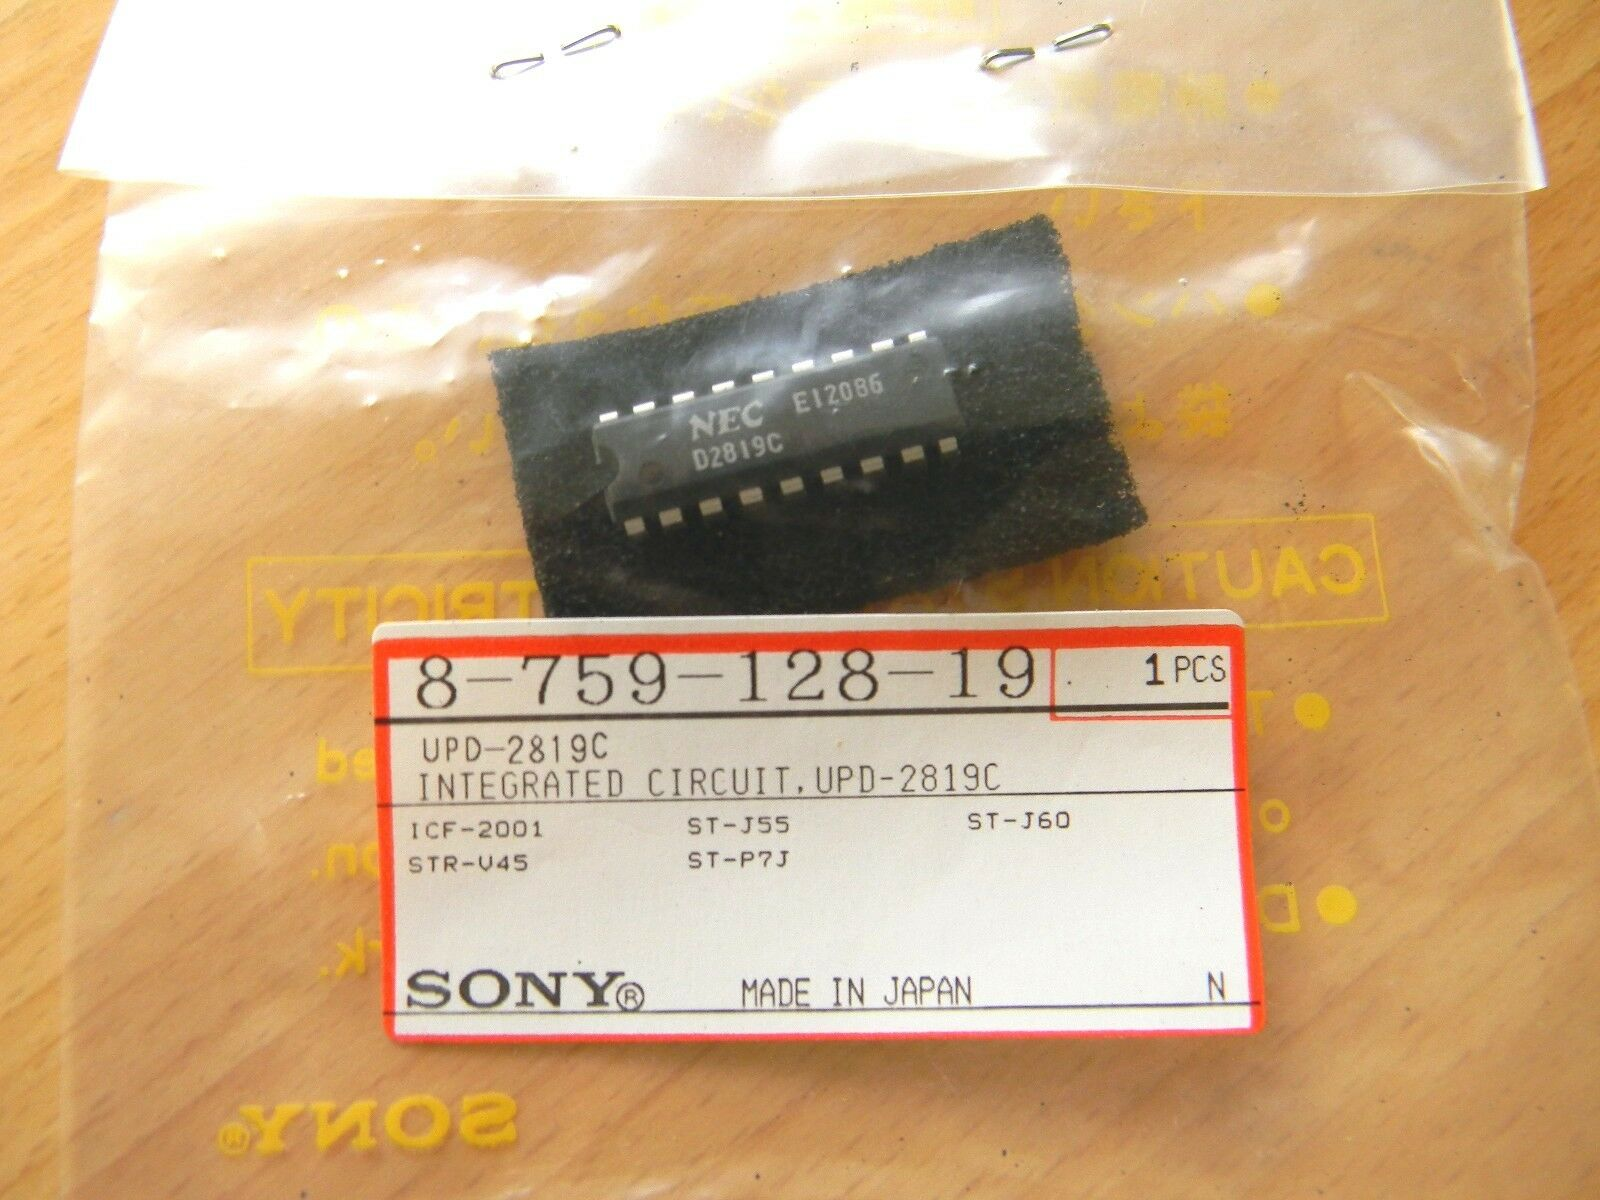 Upd2819c Nec Ic Integrated Circuit For Sony Icf St Str Part 8 759 What Is An 18 Norton Secured Powered By Verisign